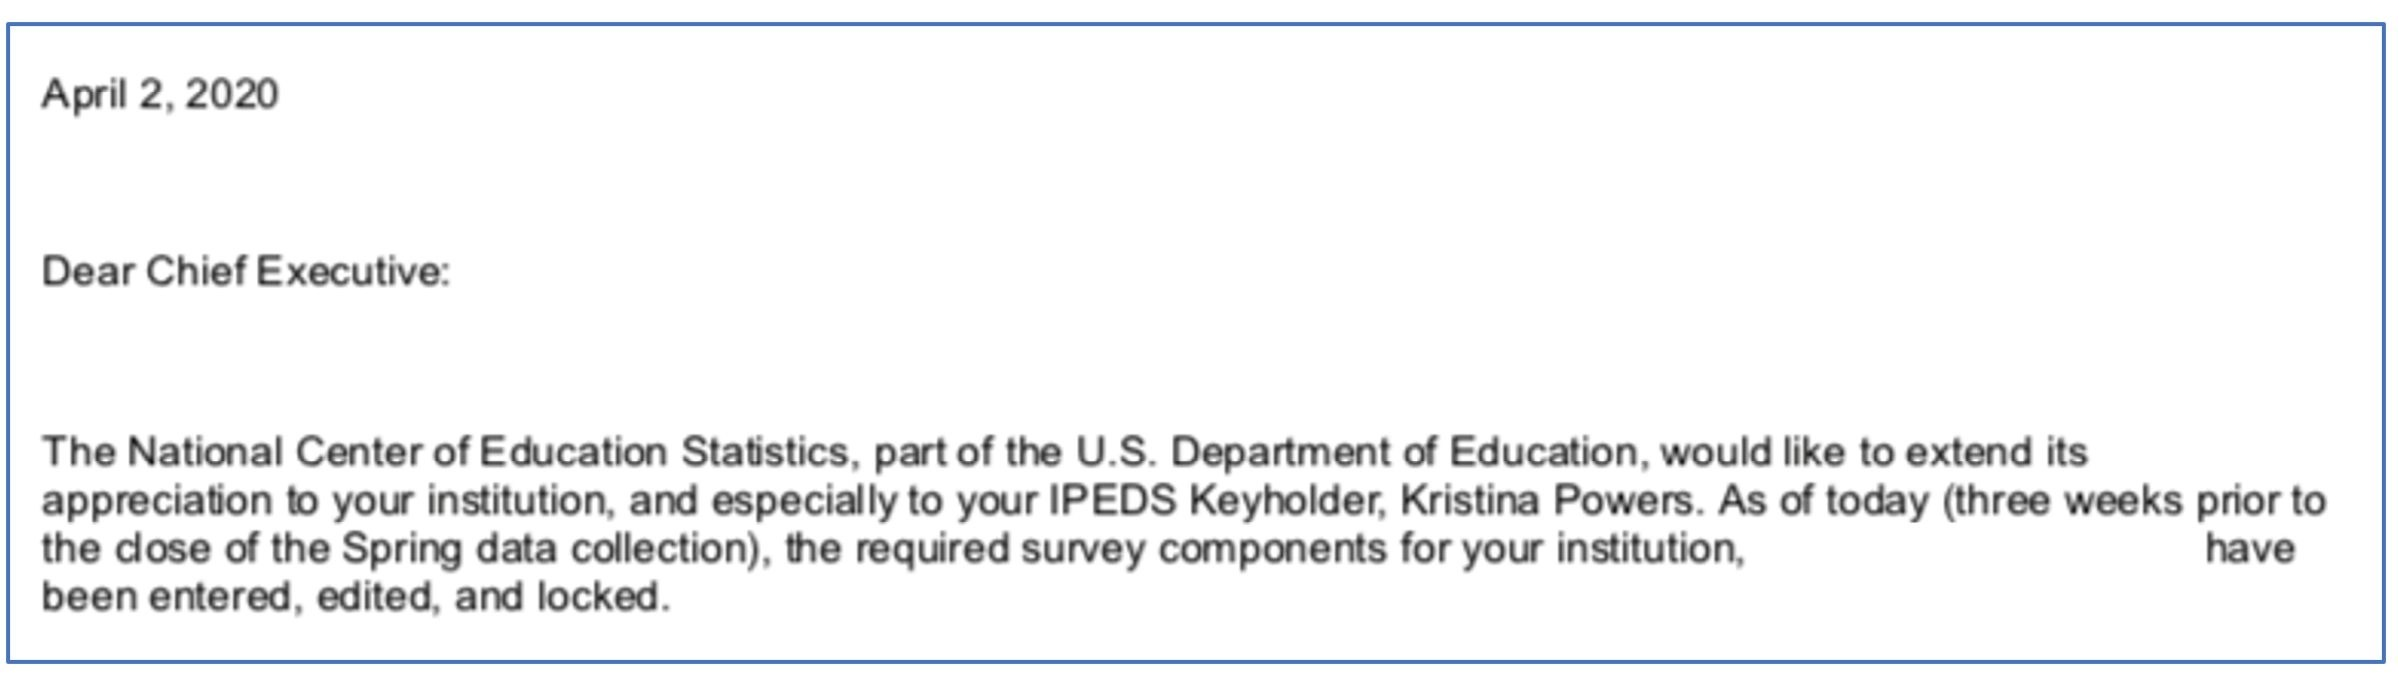 IPEDS CEO-President Kudos Letter